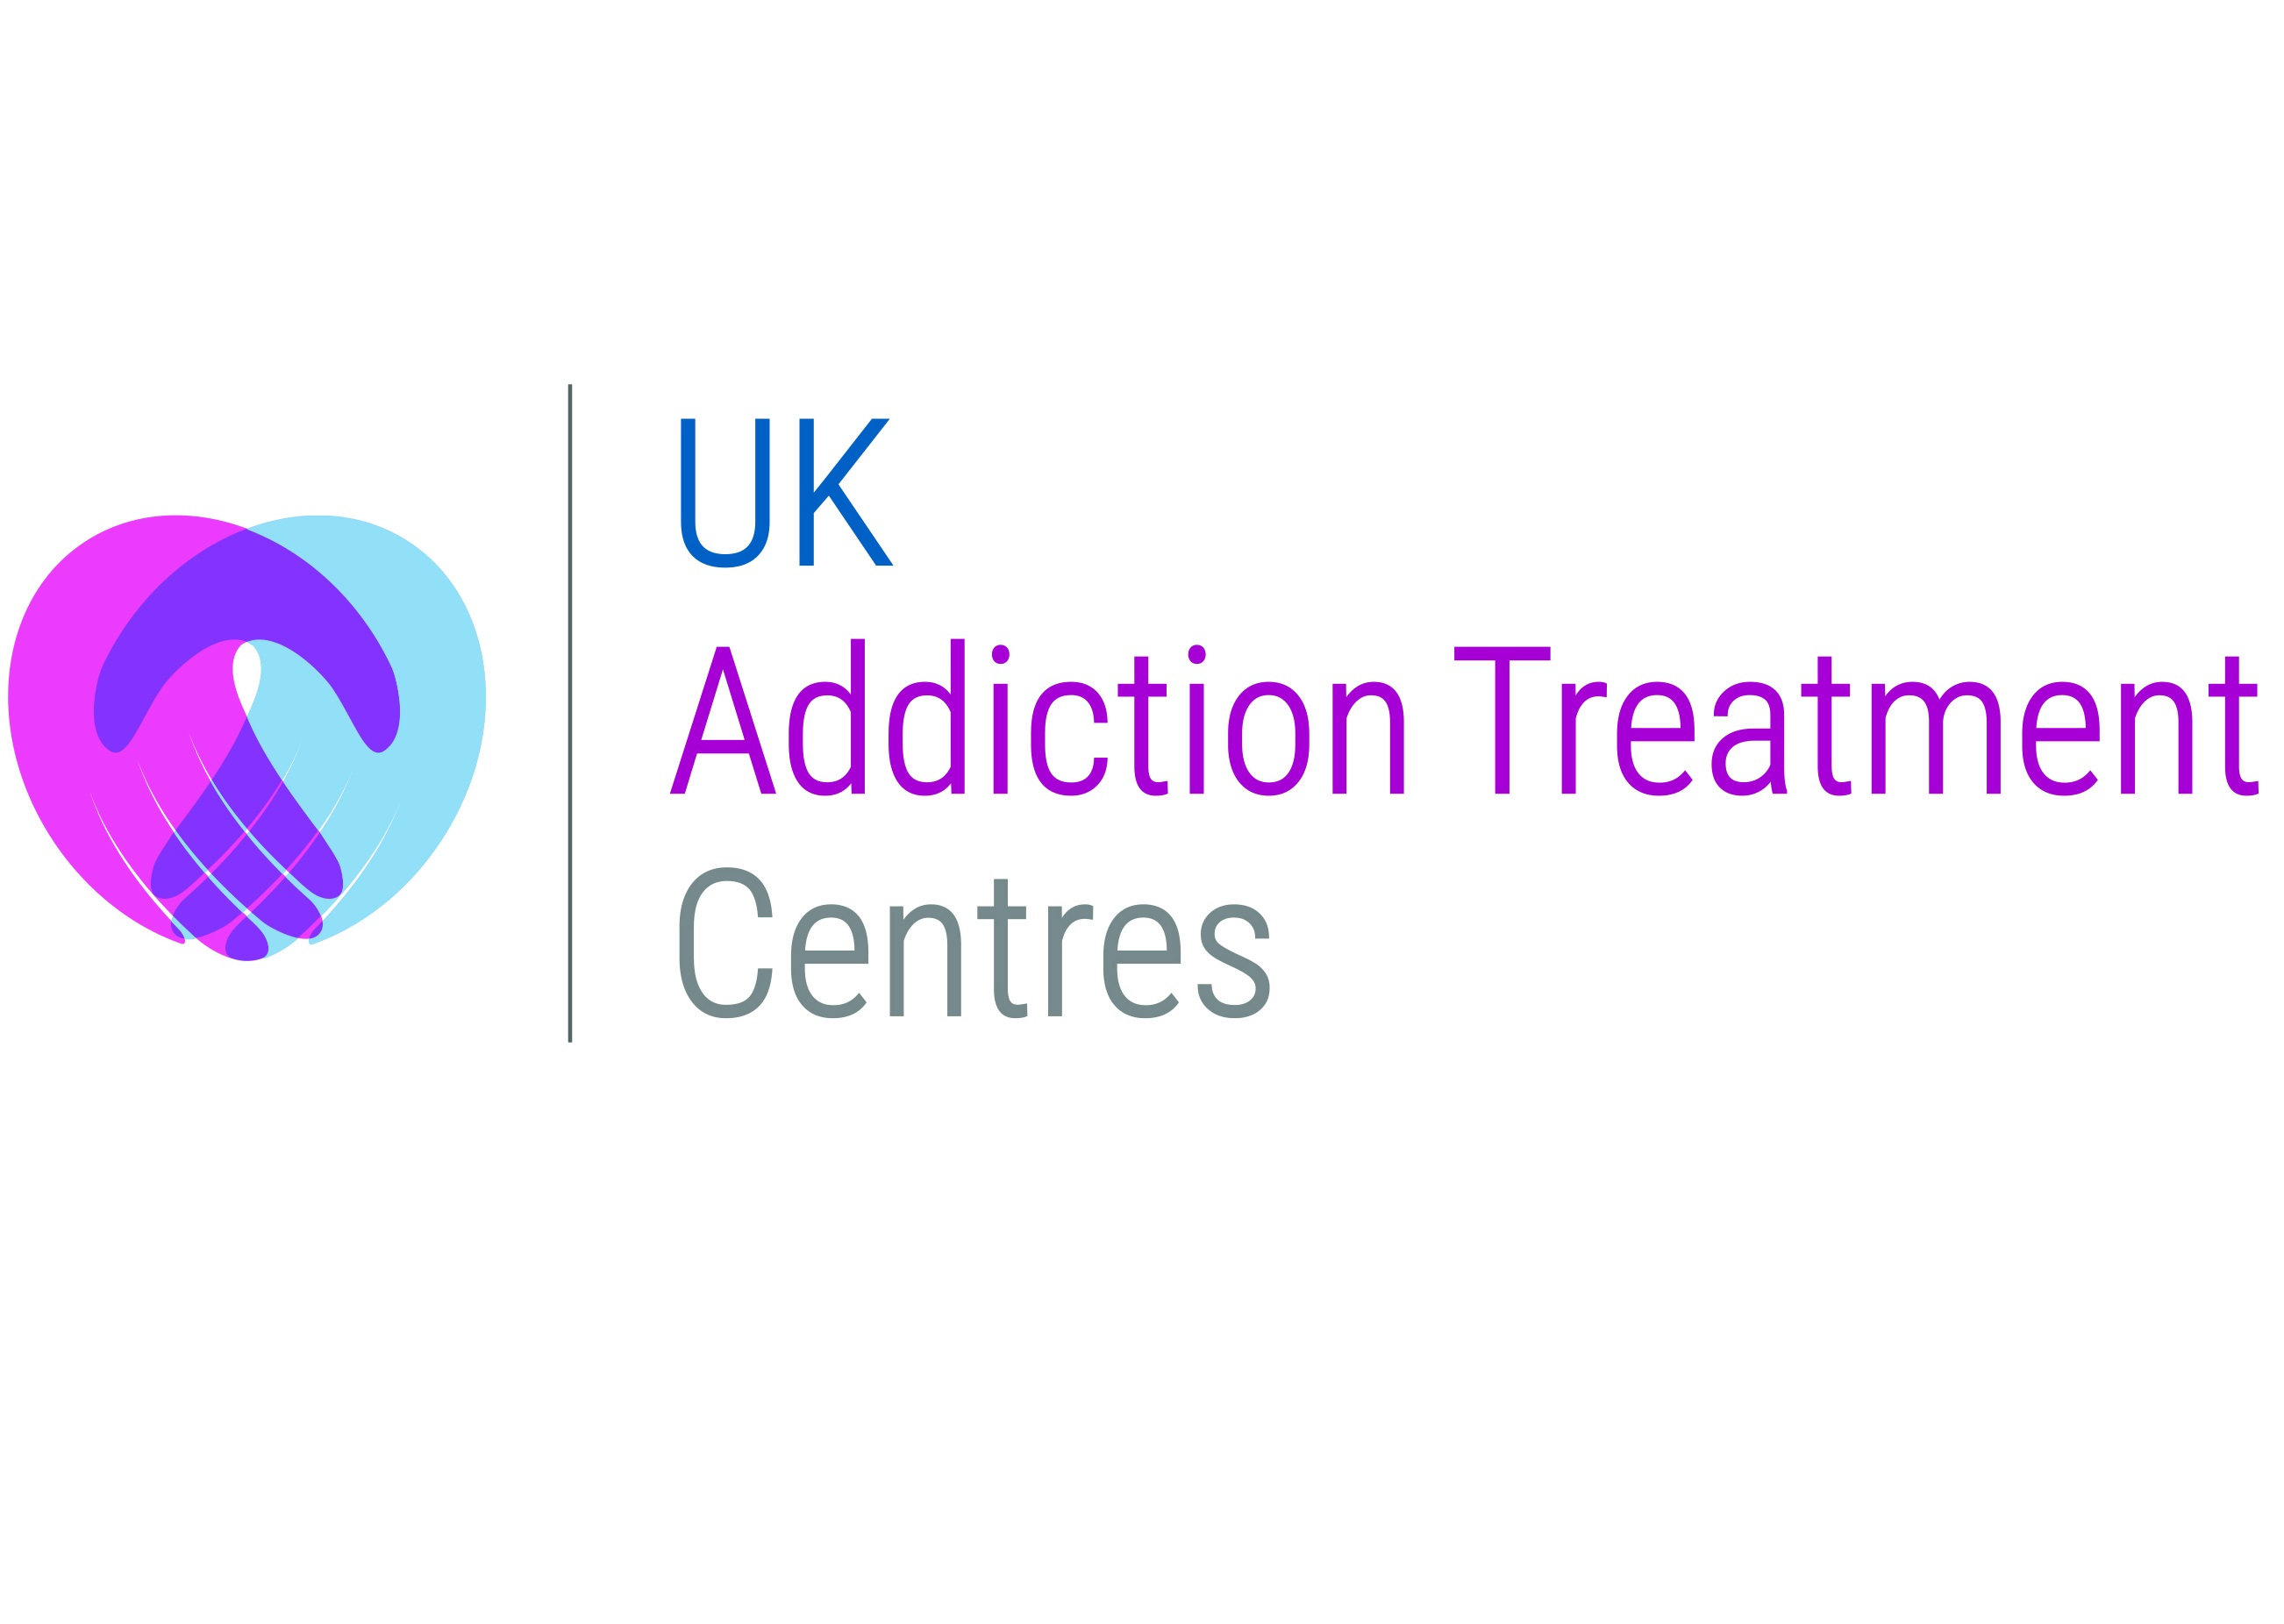 uk addiction treatment centres logo